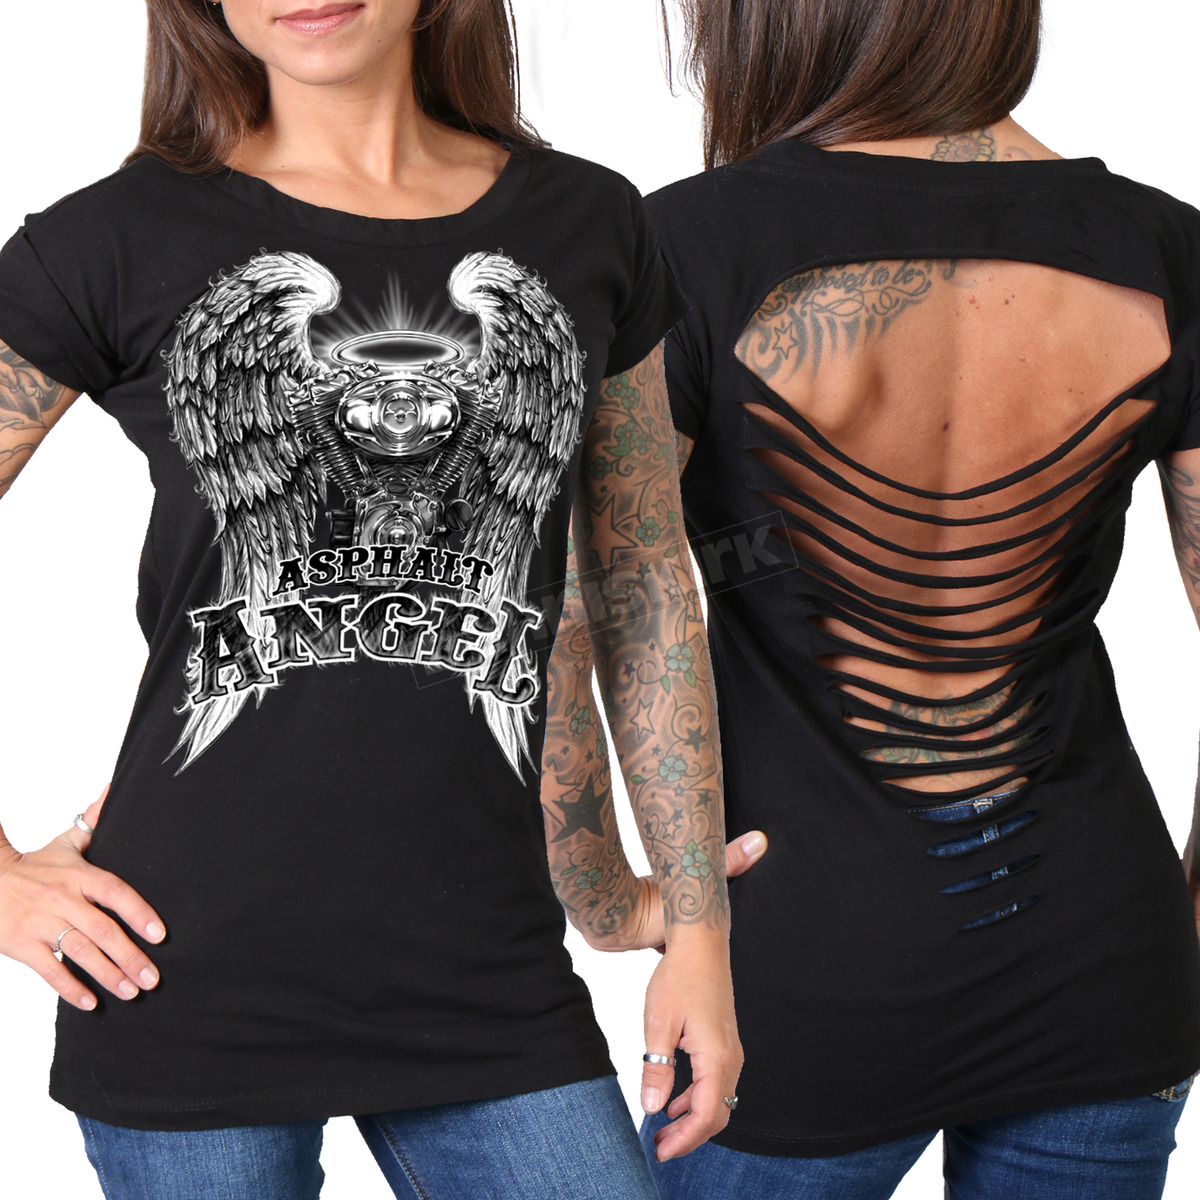 Sexy biker clothes for women